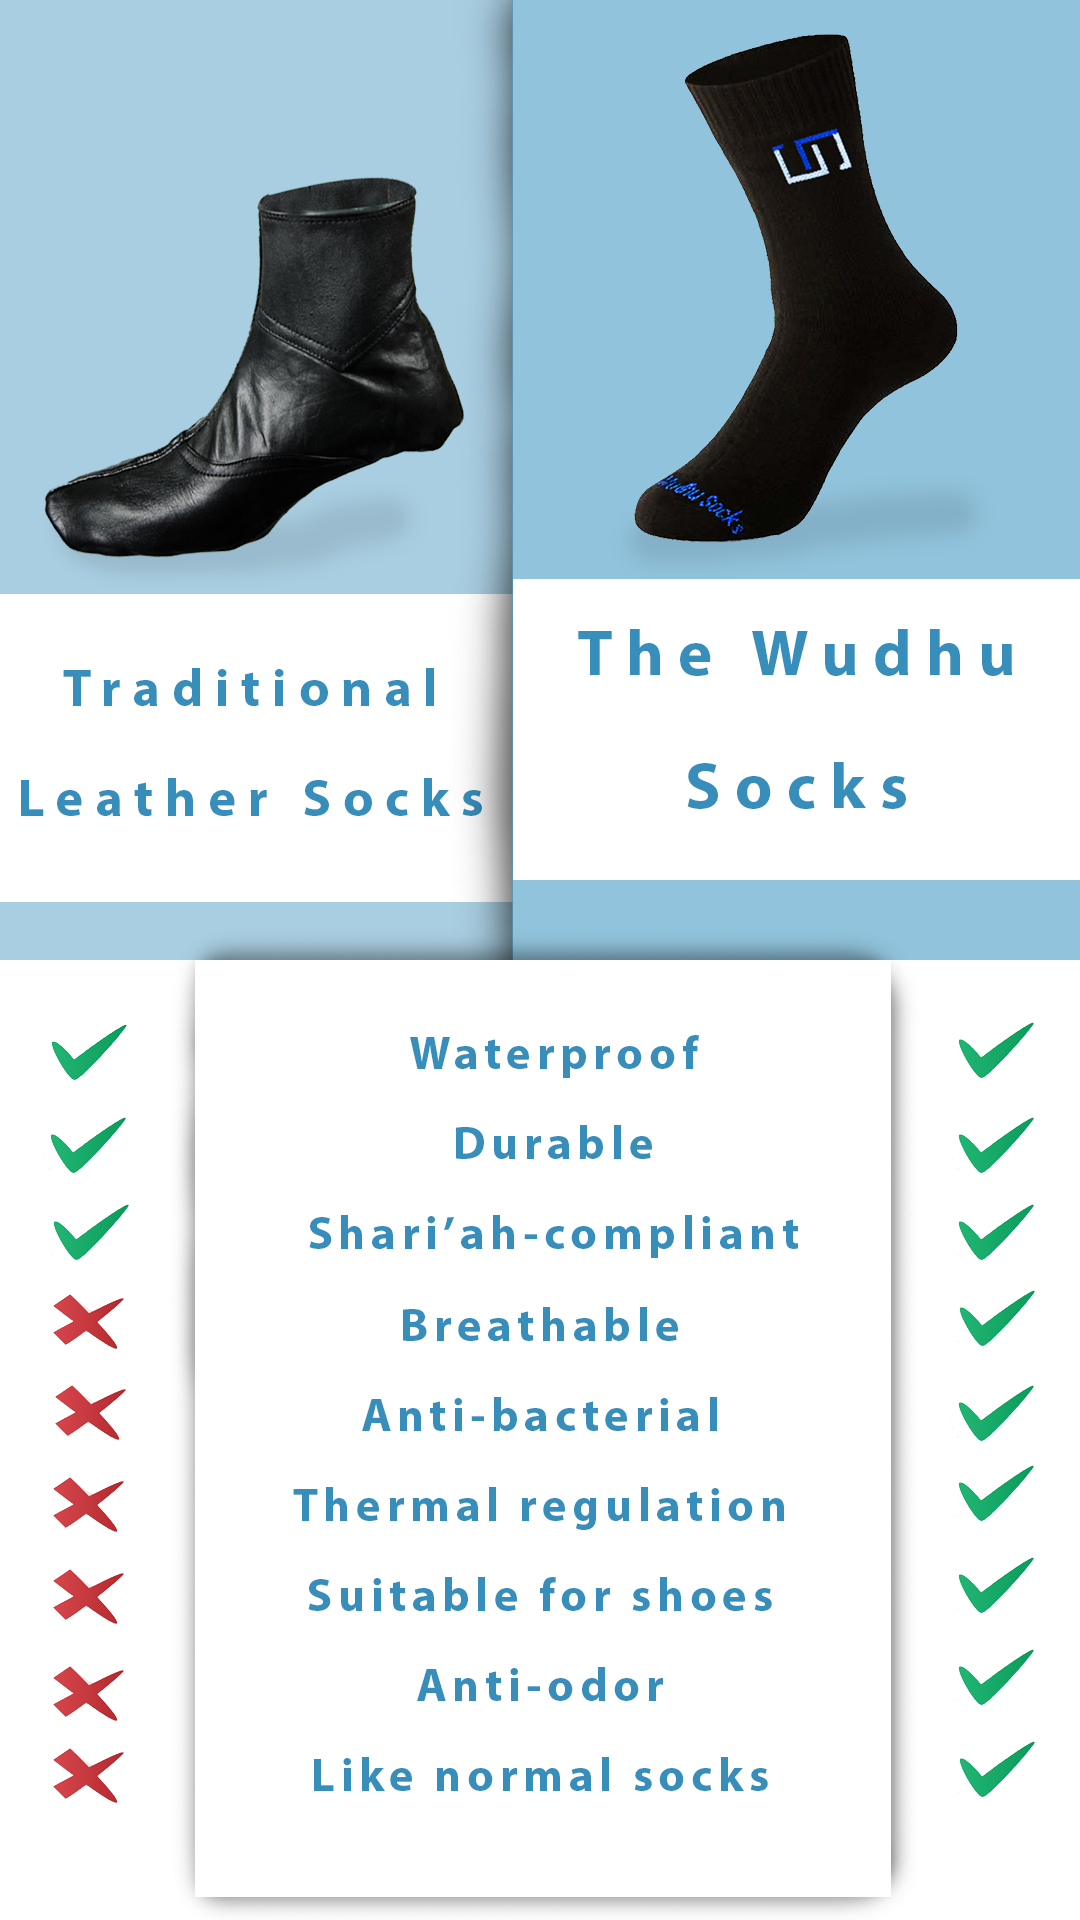 Khuffain (khuff) versus The Wudhu Socks - Socks for ablution (wudu, wudhu, wuzu)